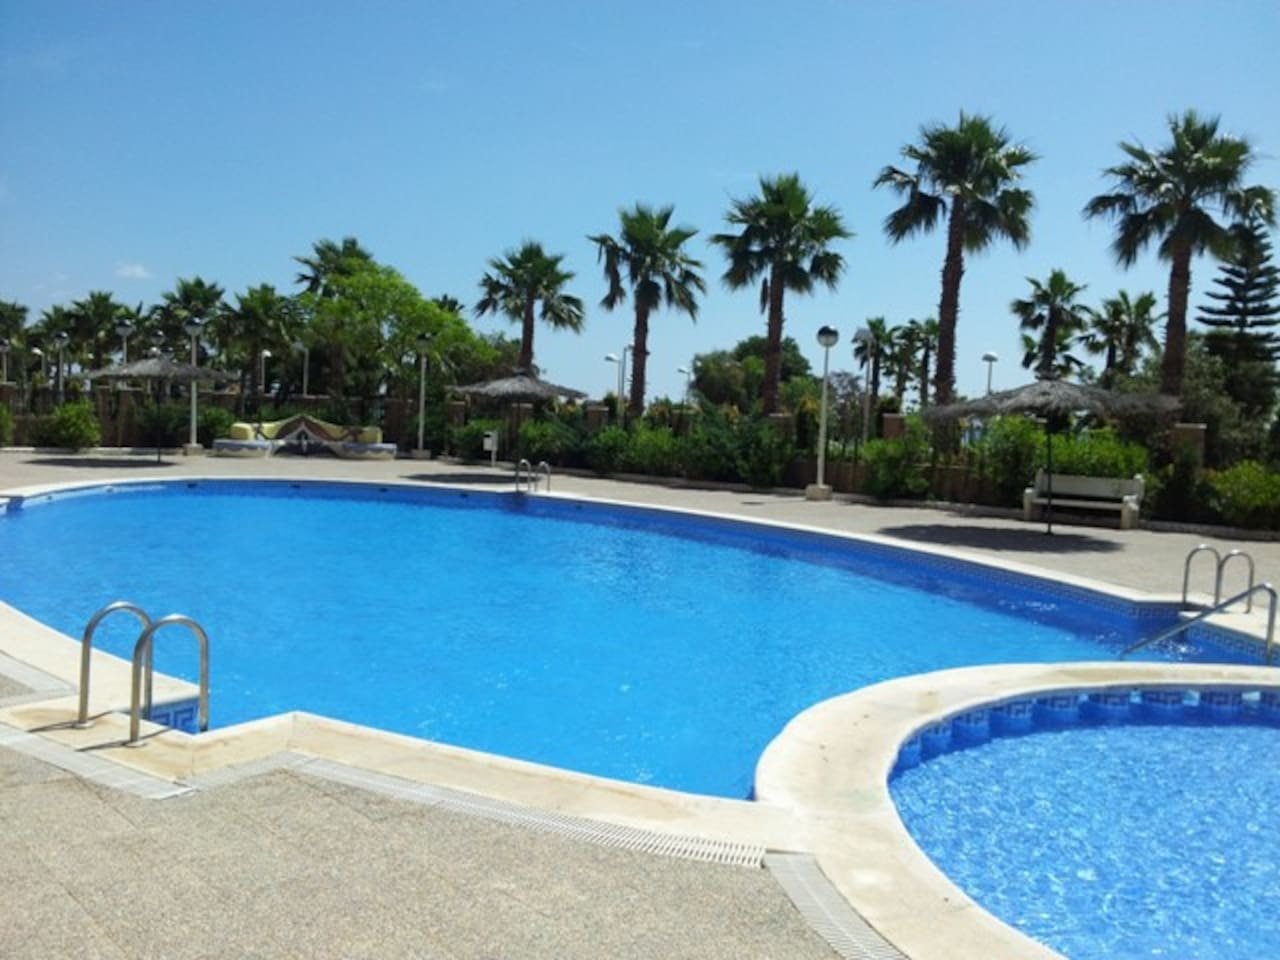 Adult & Child pool, with direct beach access  just 50 meters away!